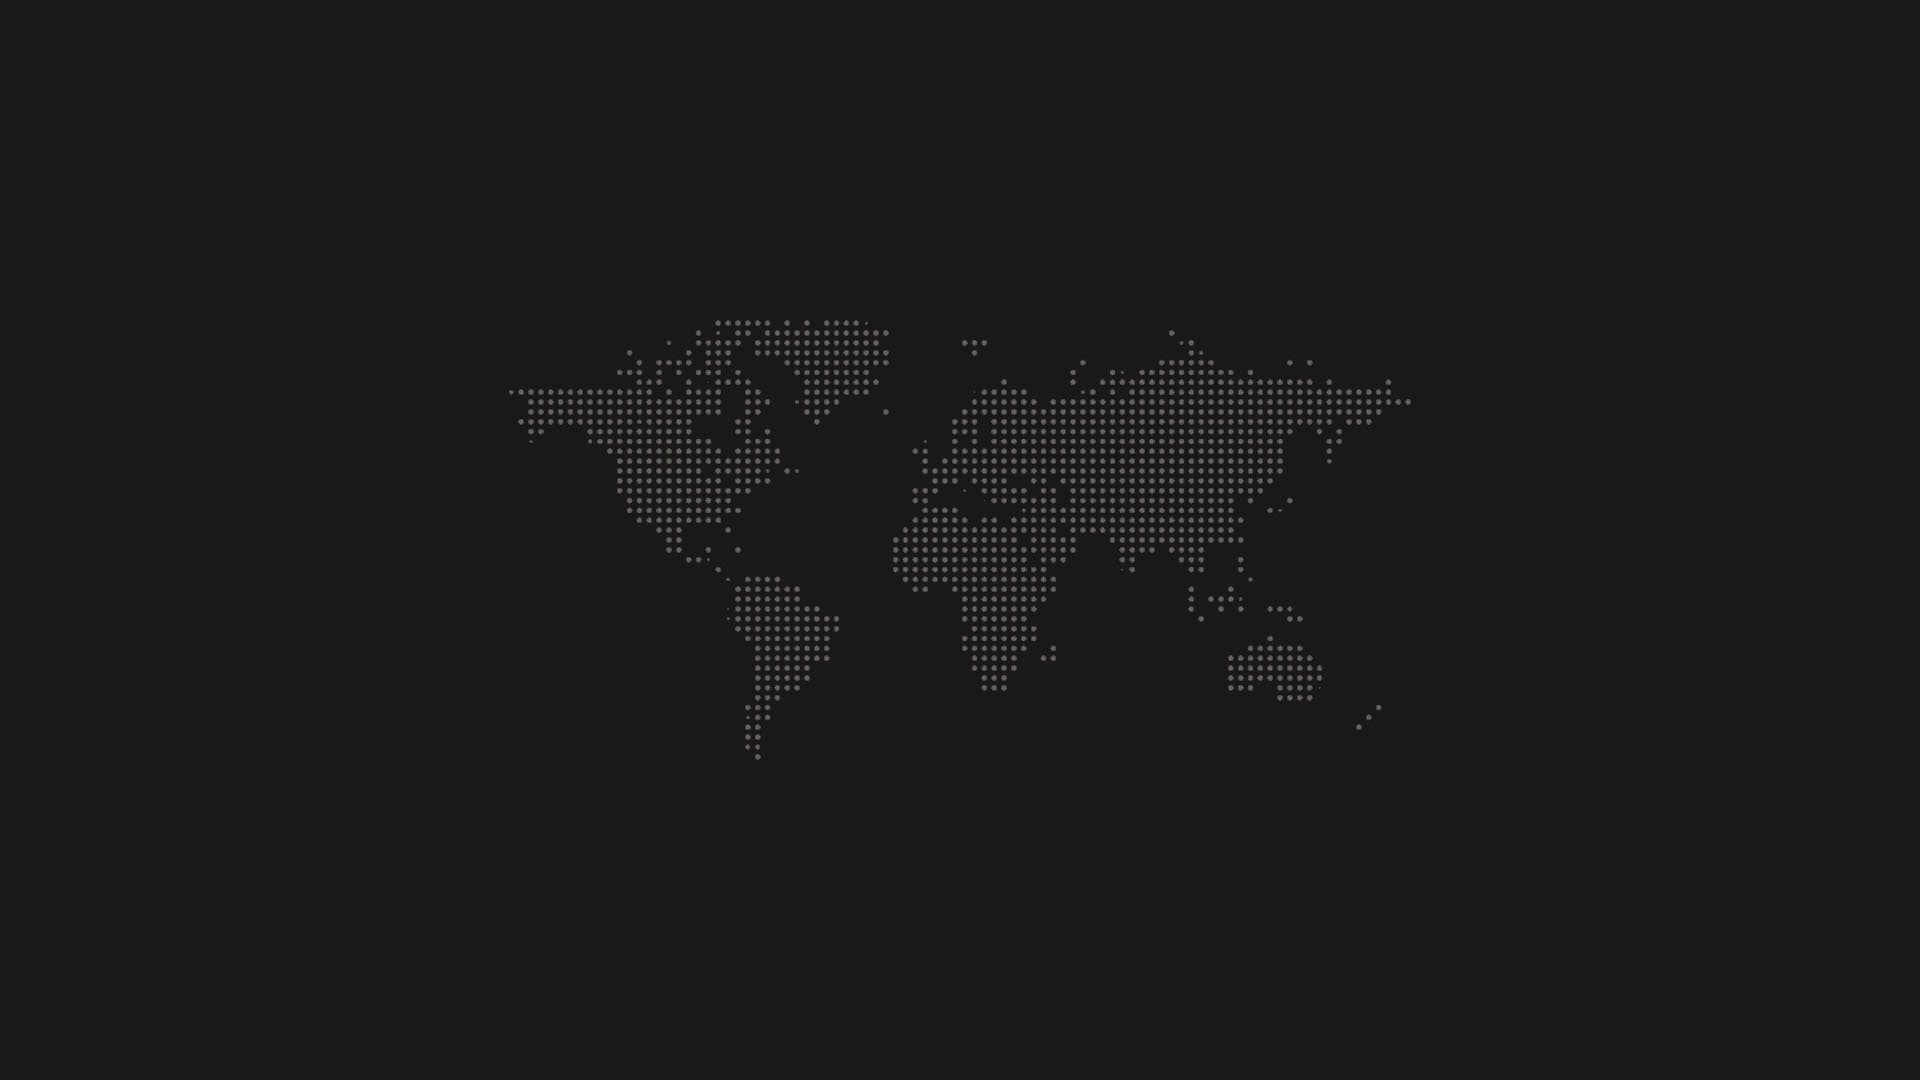 live world map desktop wallpaper - wallpapersafari